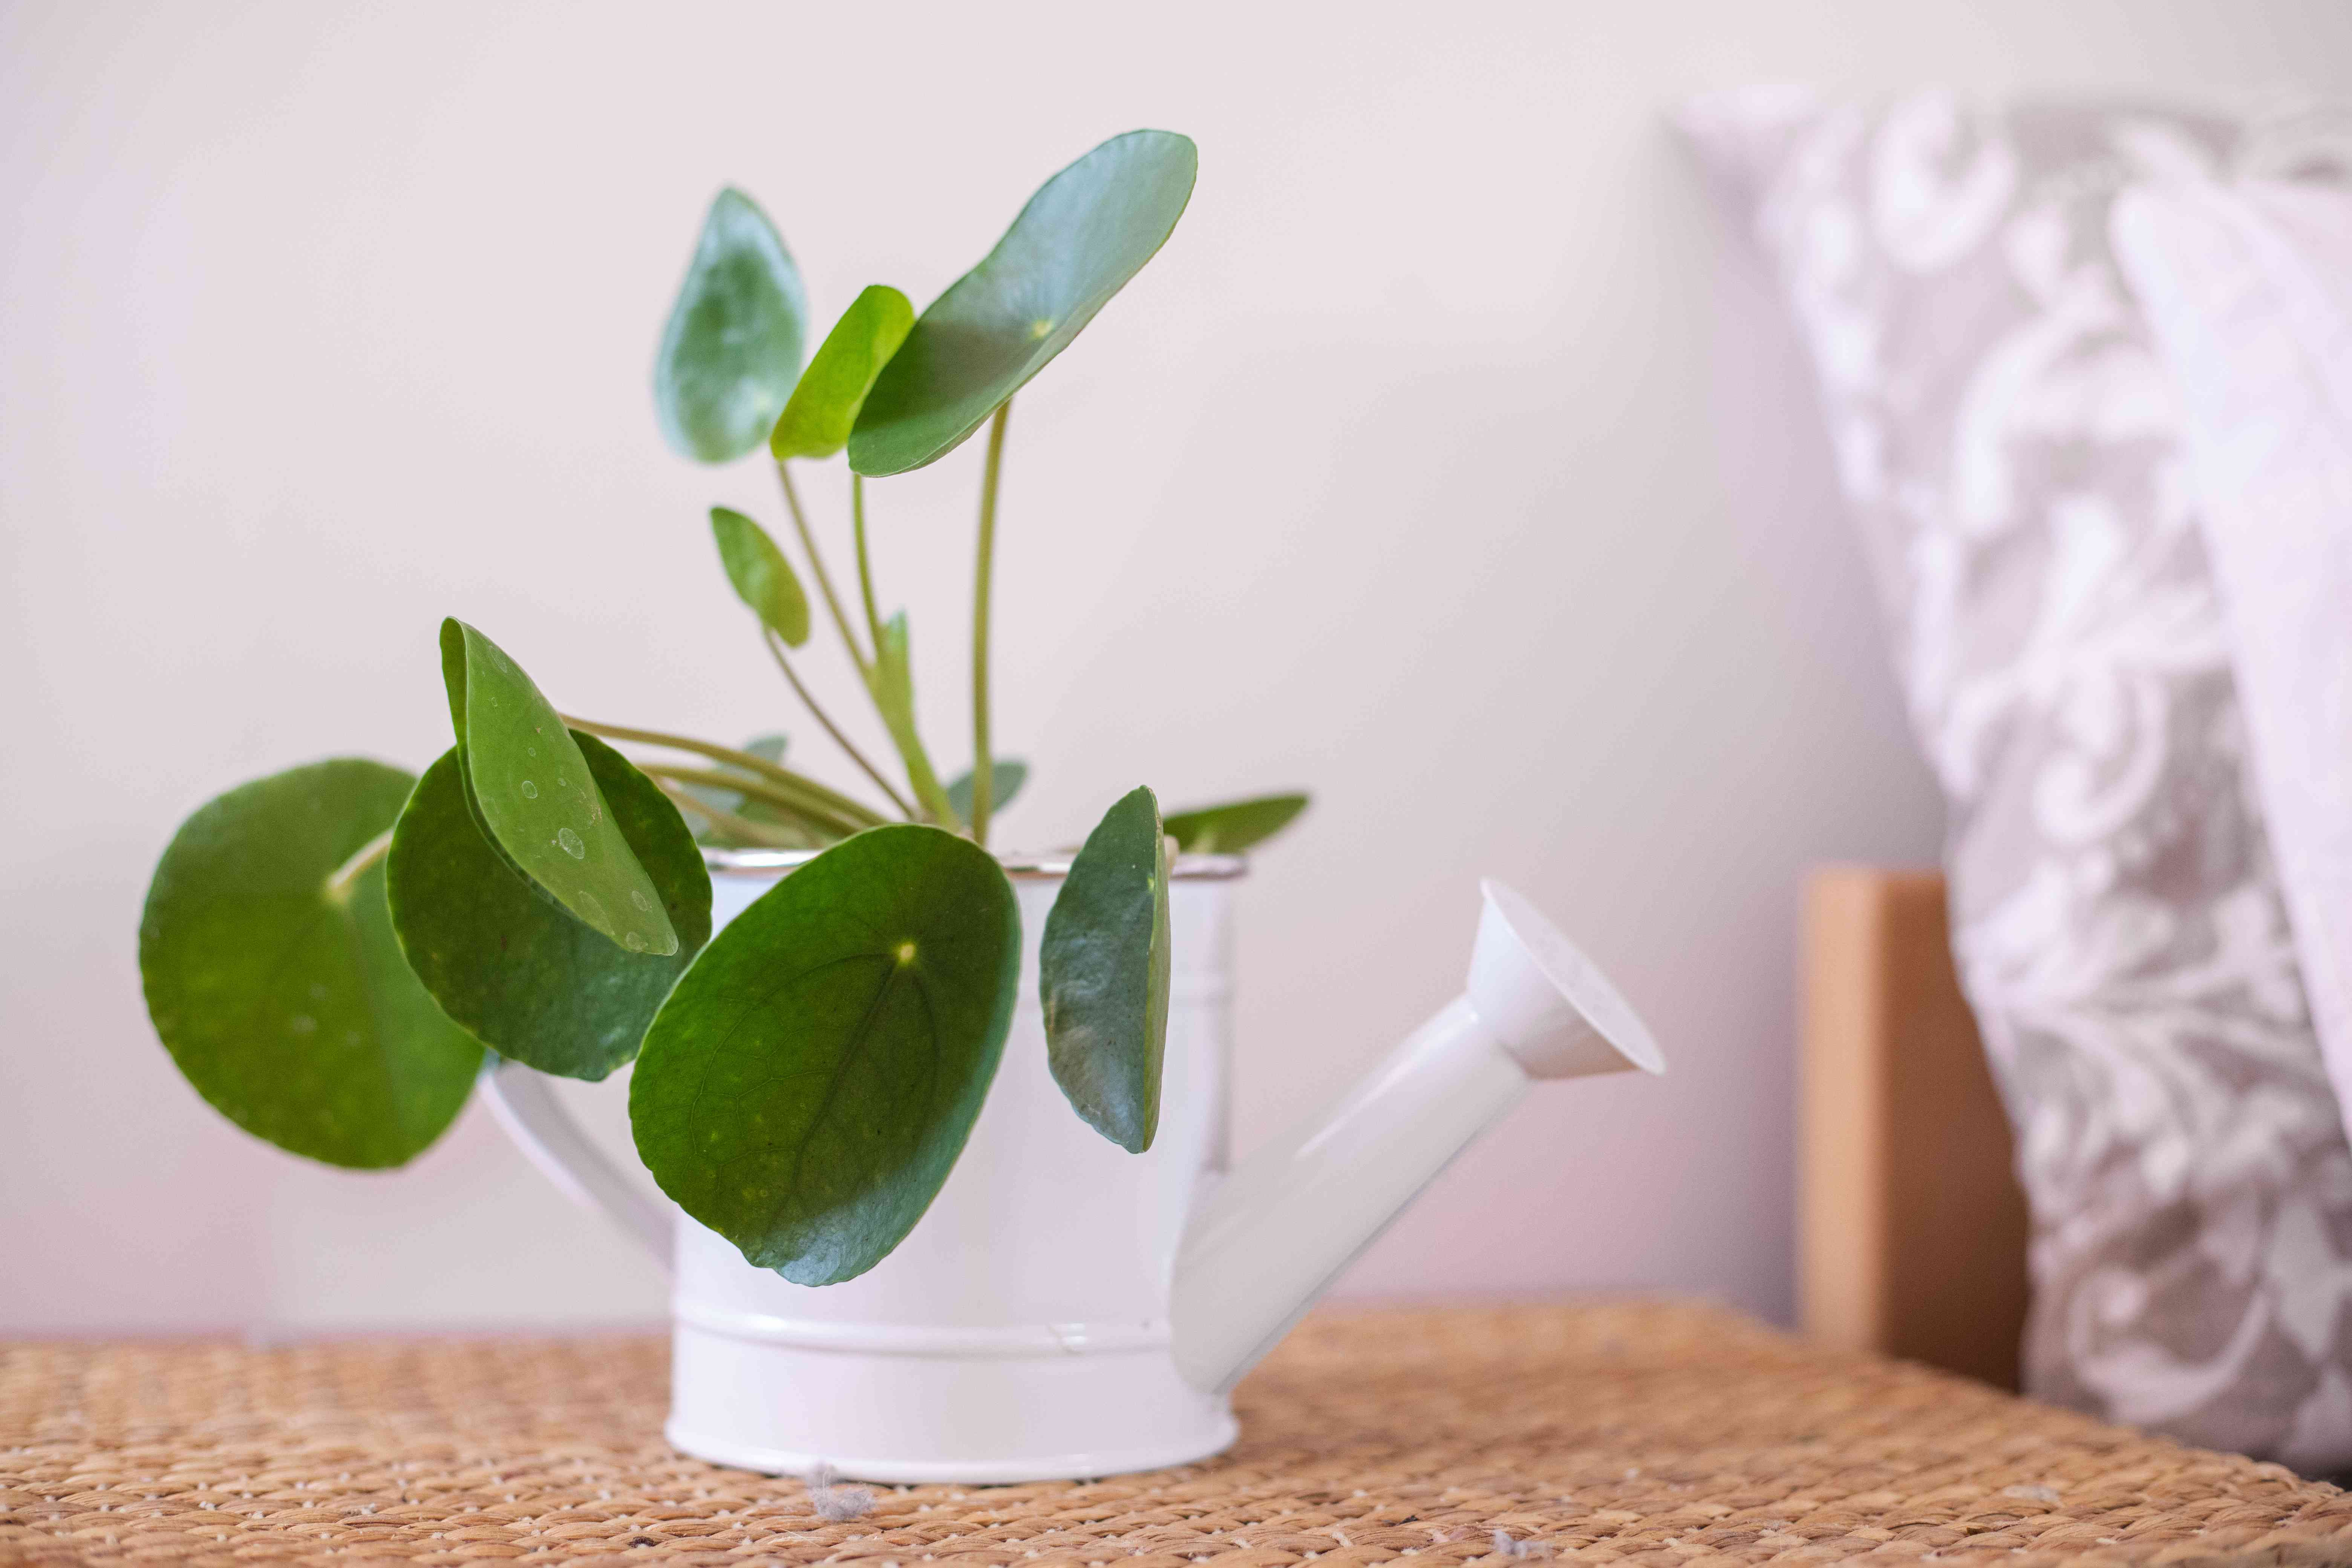 chinese money plant in metal watering container on rattan side table next to pillows